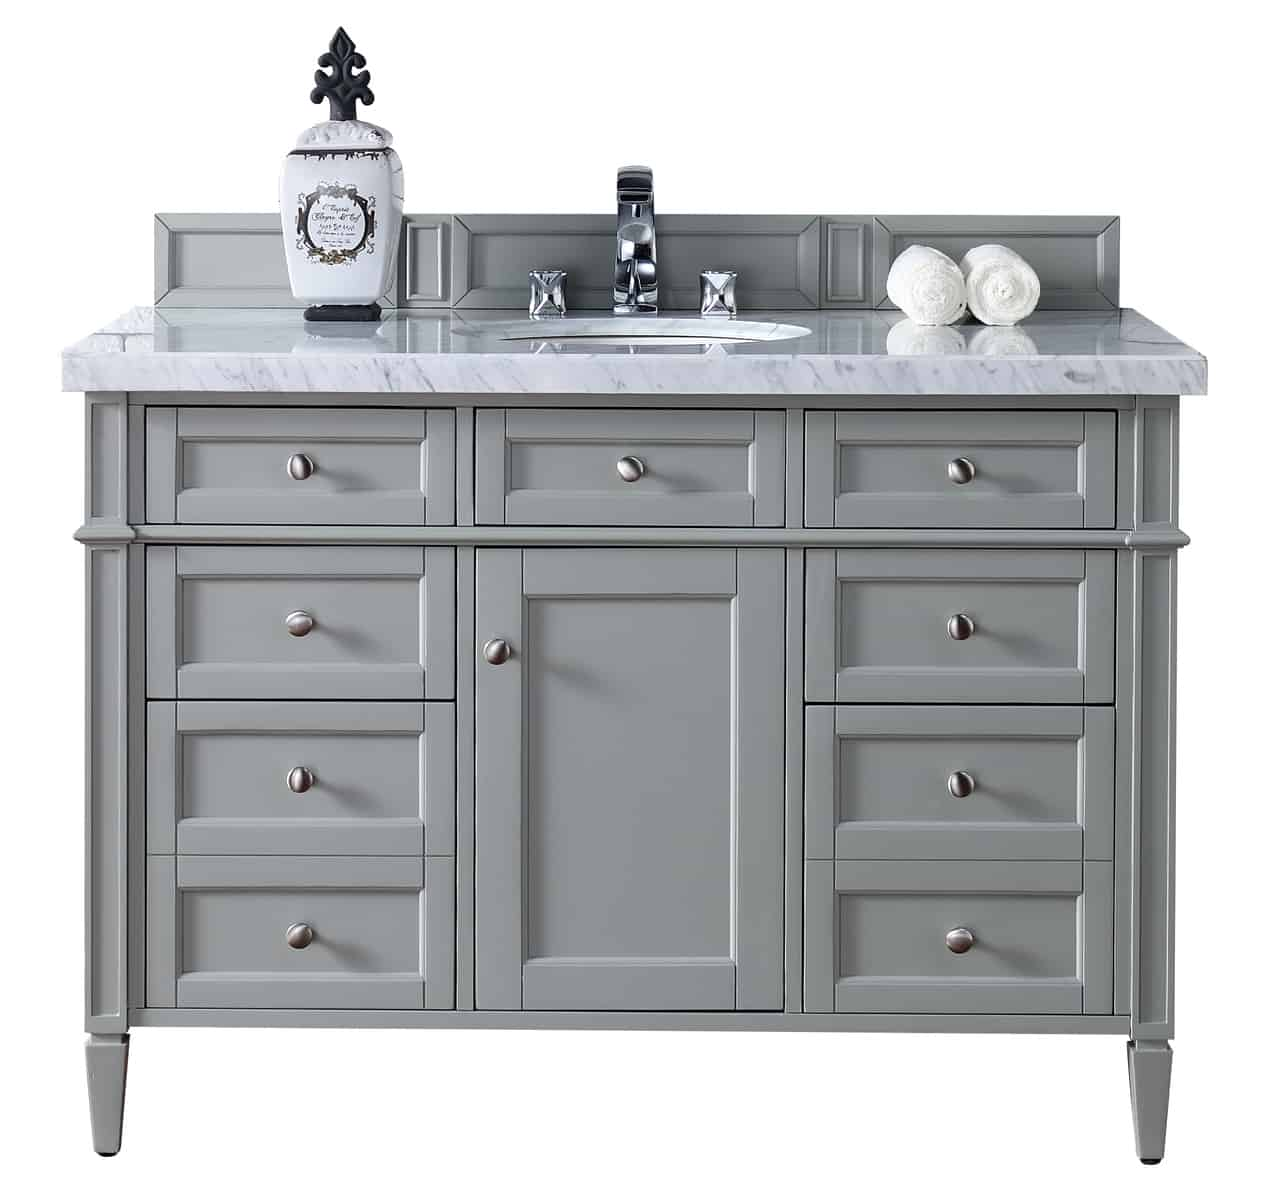 Contemporary-48-inch-Single-Bathroom-Vanity-Gray-Finish-No-Top